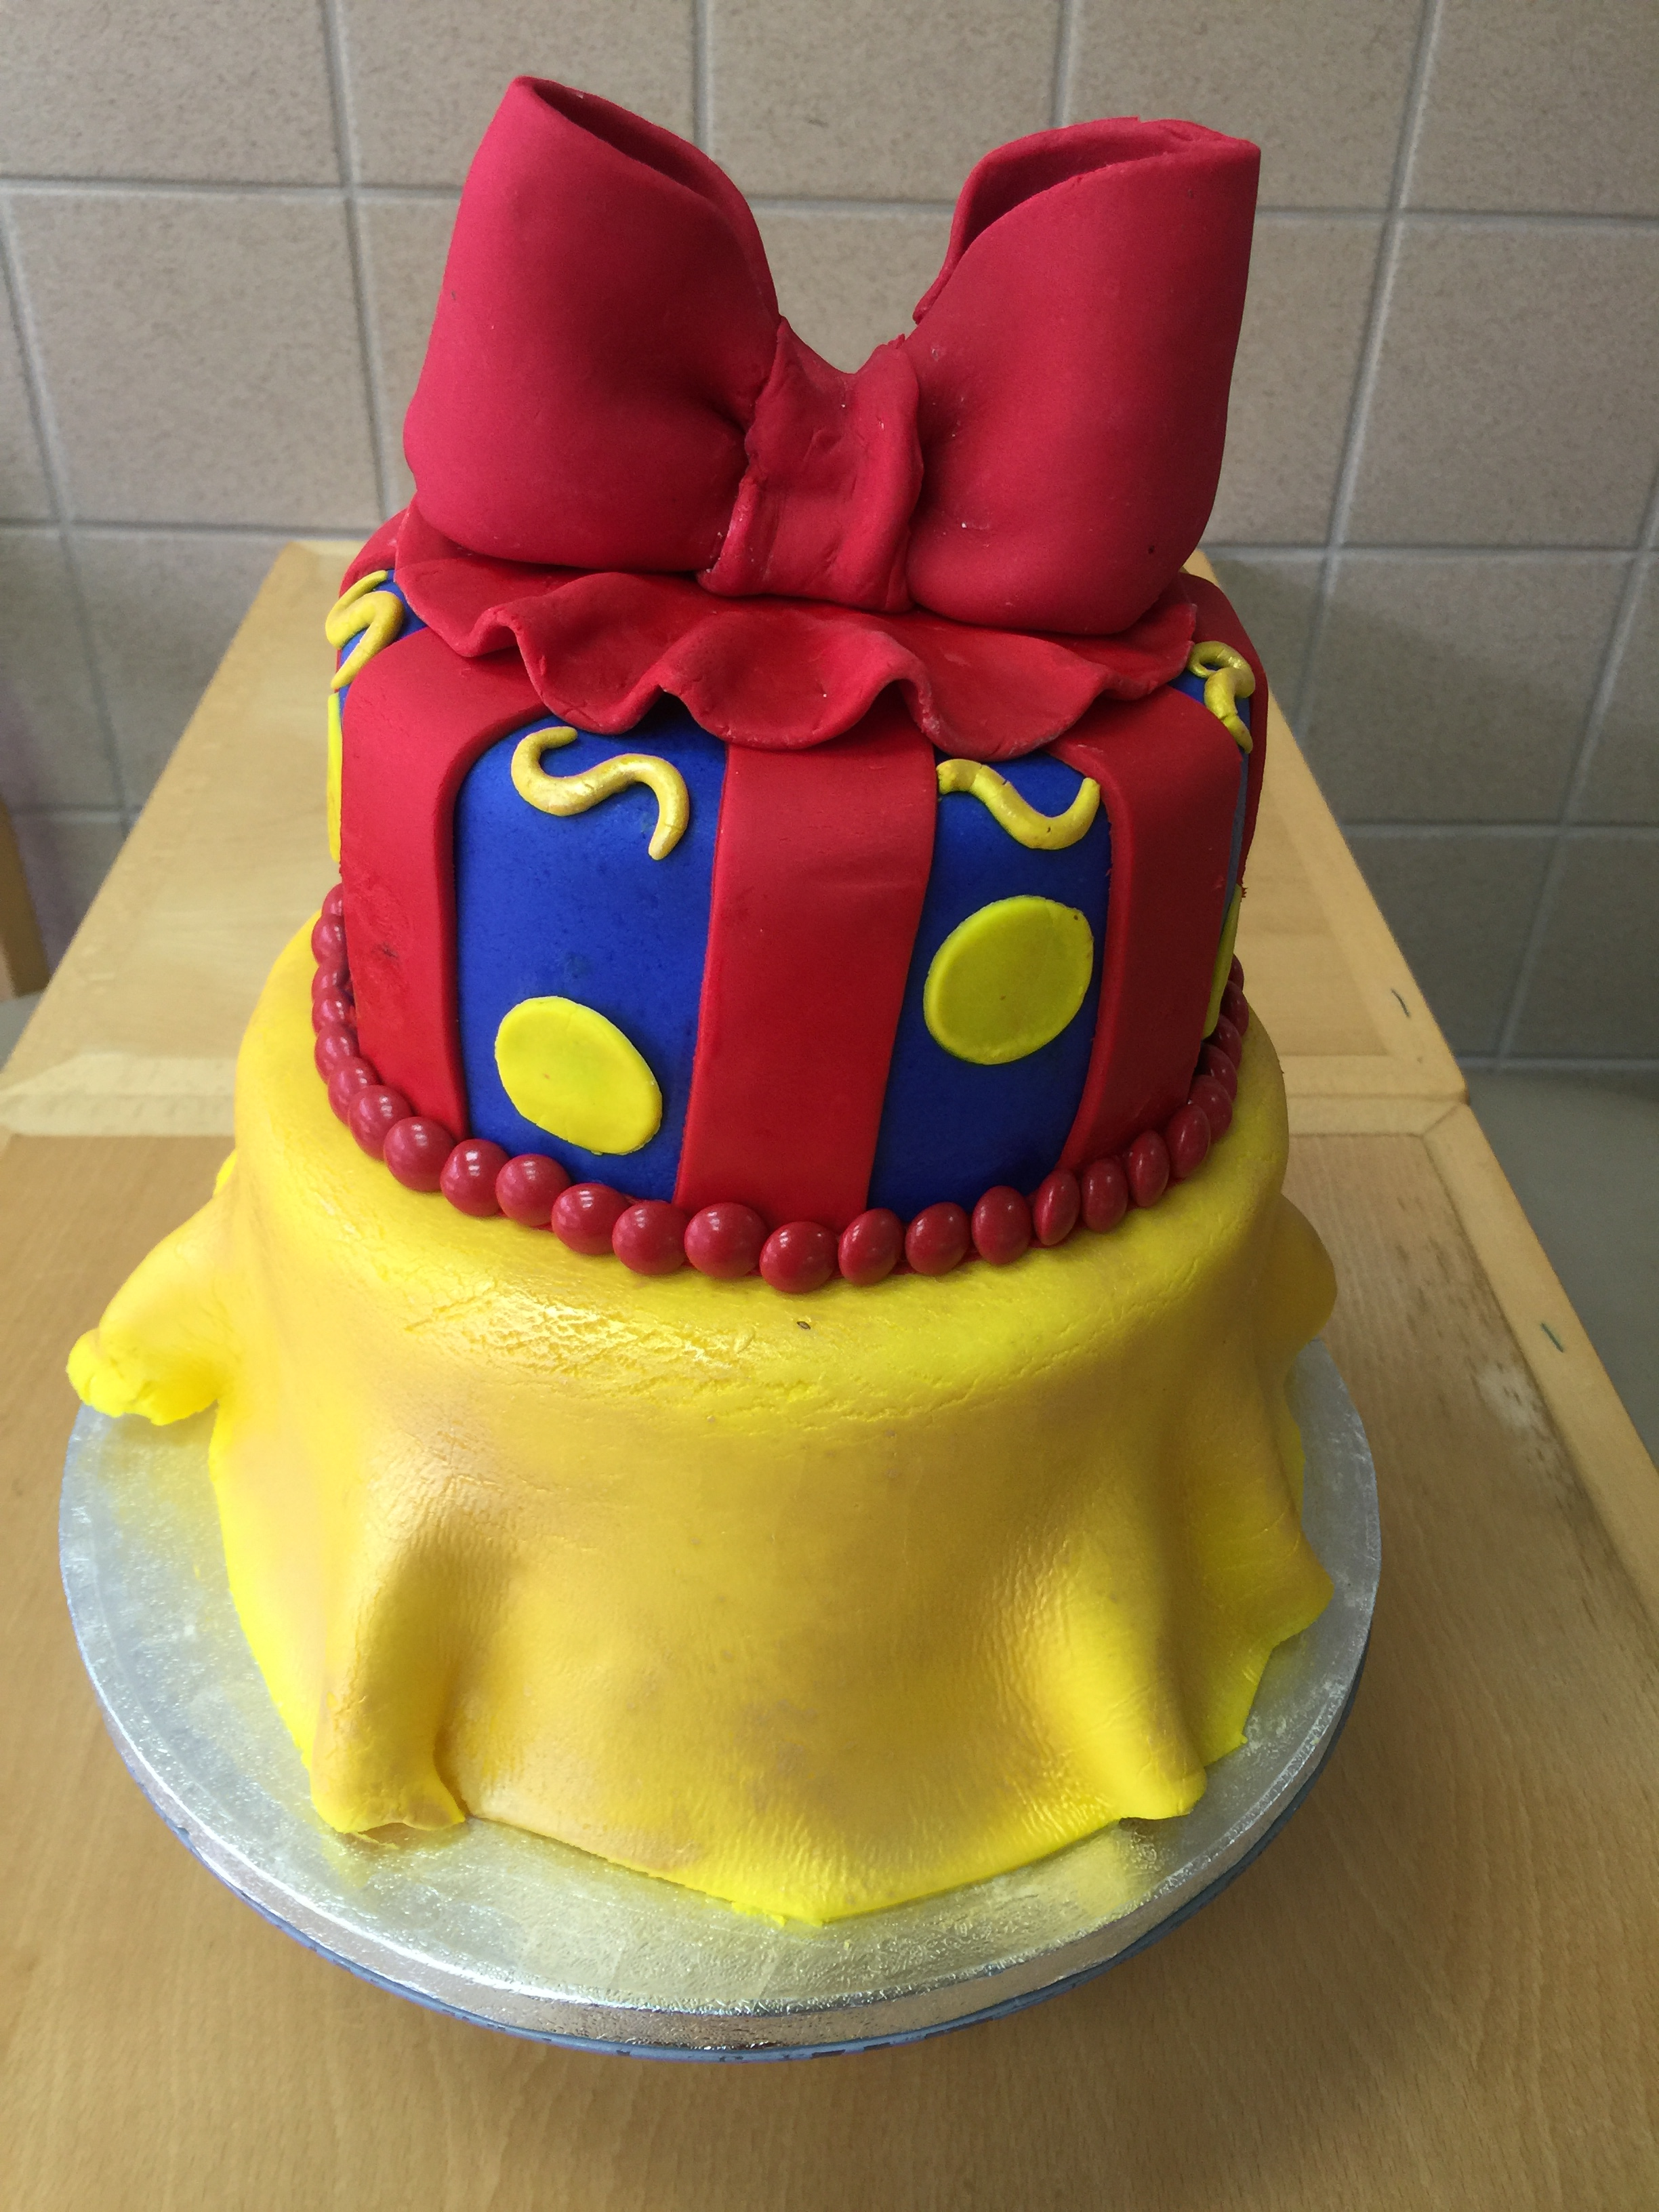 Pleasing Snow White Themed First Birthday Cake Wild Berries Bakery And Cafe Funny Birthday Cards Online Alyptdamsfinfo